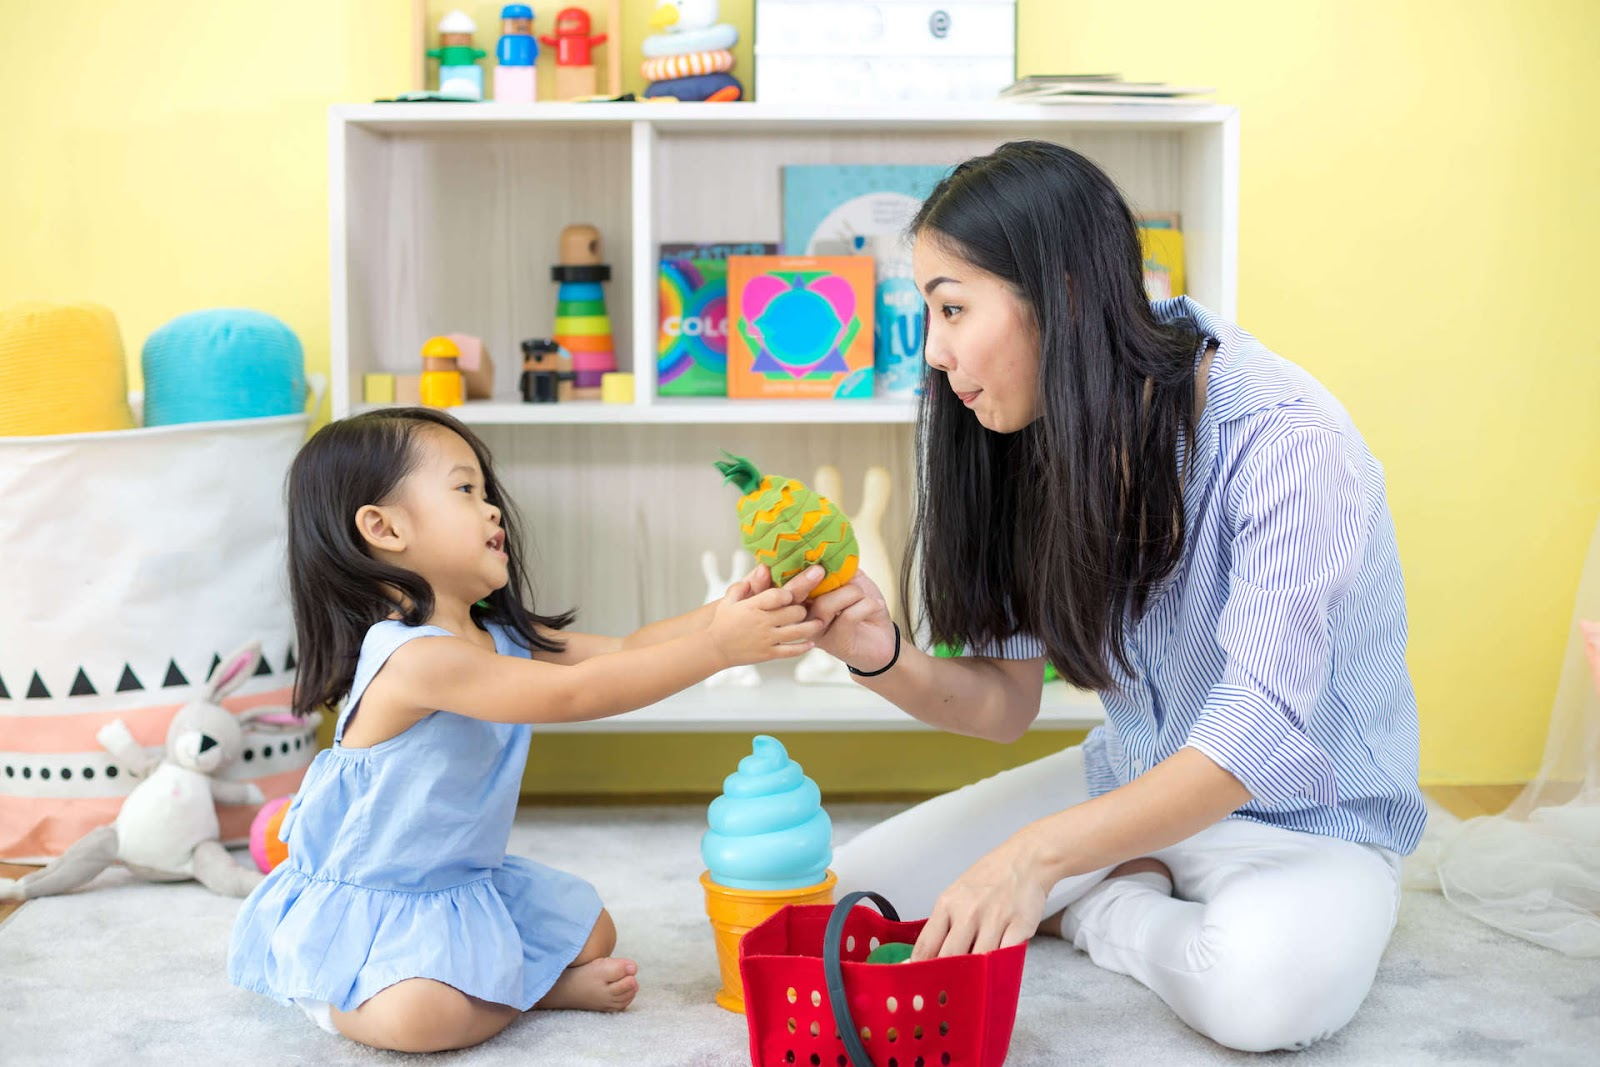 Woman and Child Playing with Plush Toy